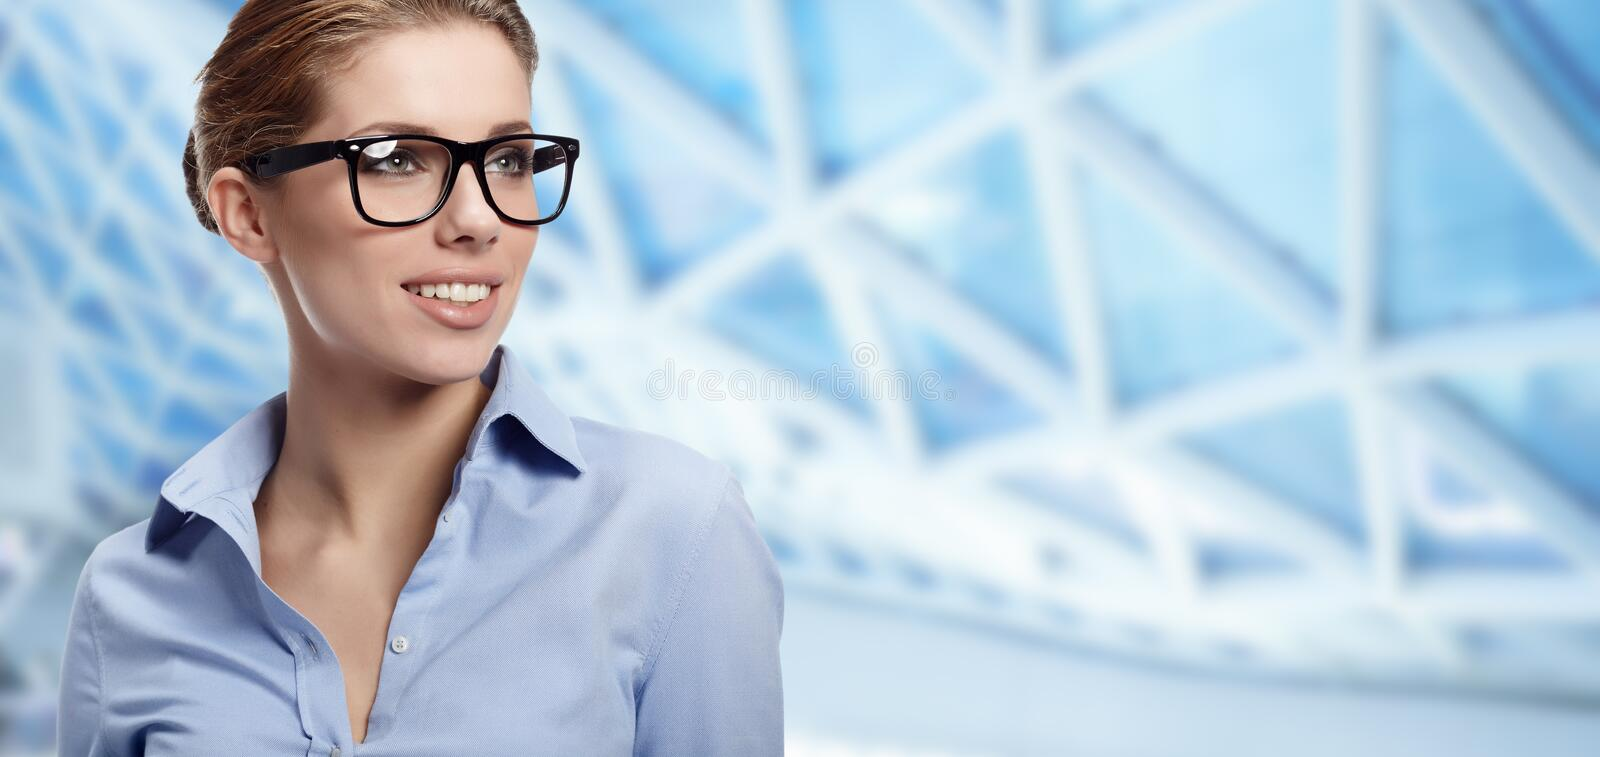 Woman Wearing Glasses in office stock photo